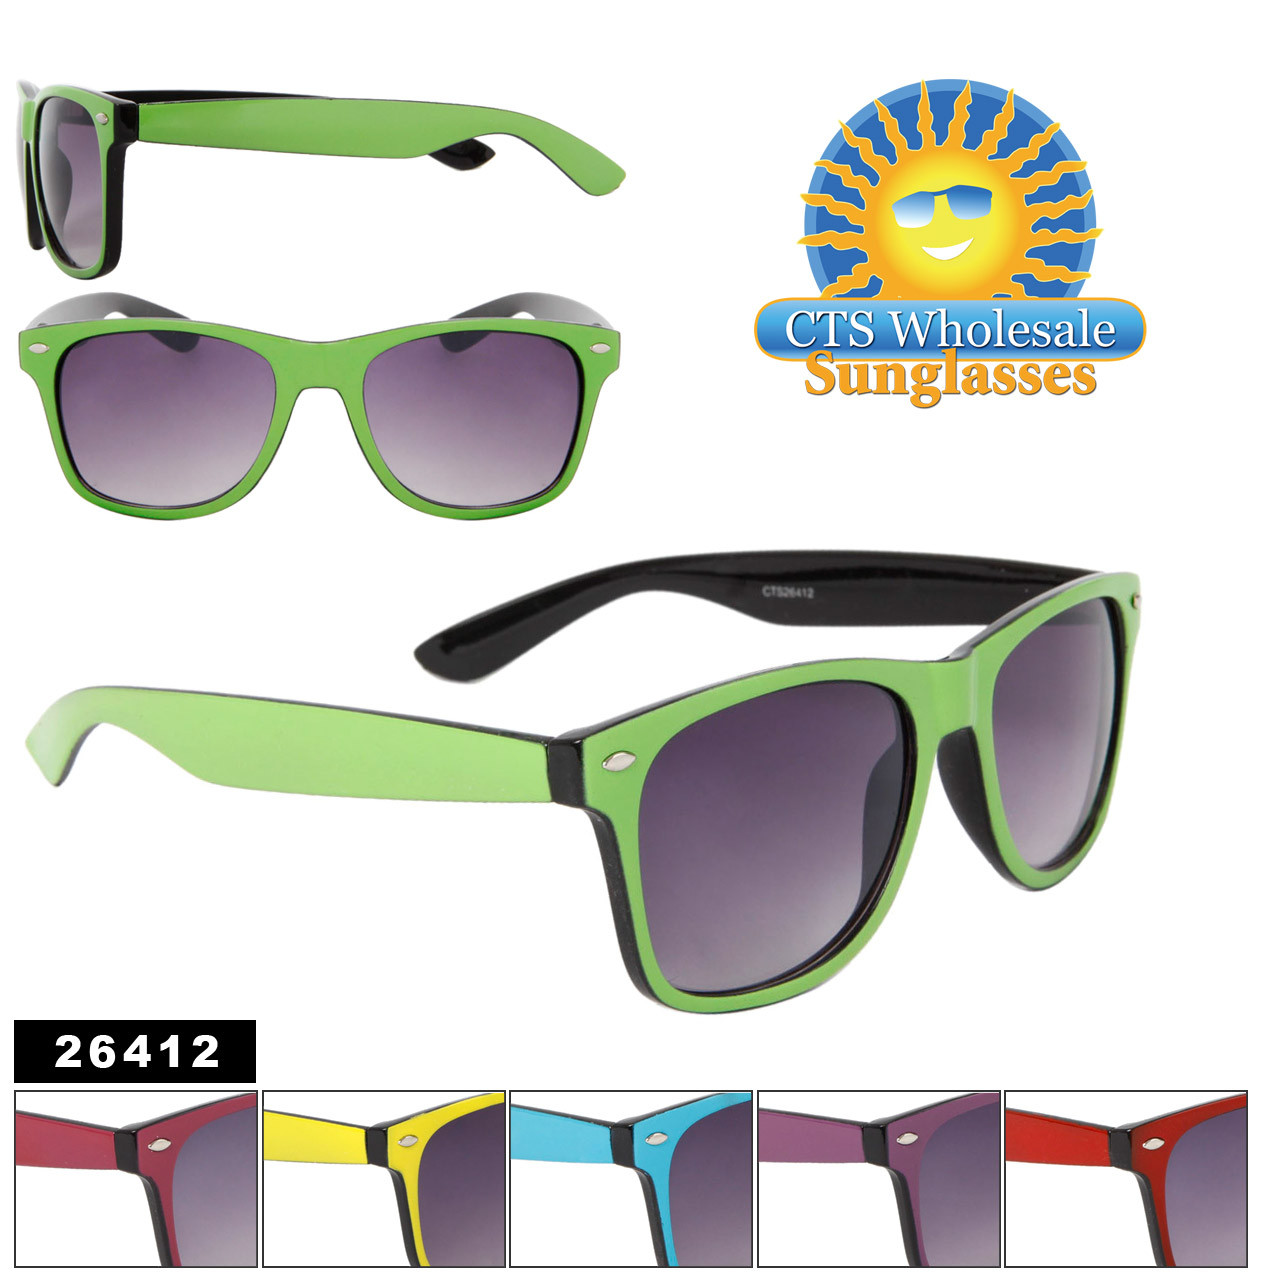 New Two Tone California Classics Sunglasses Item # 26412